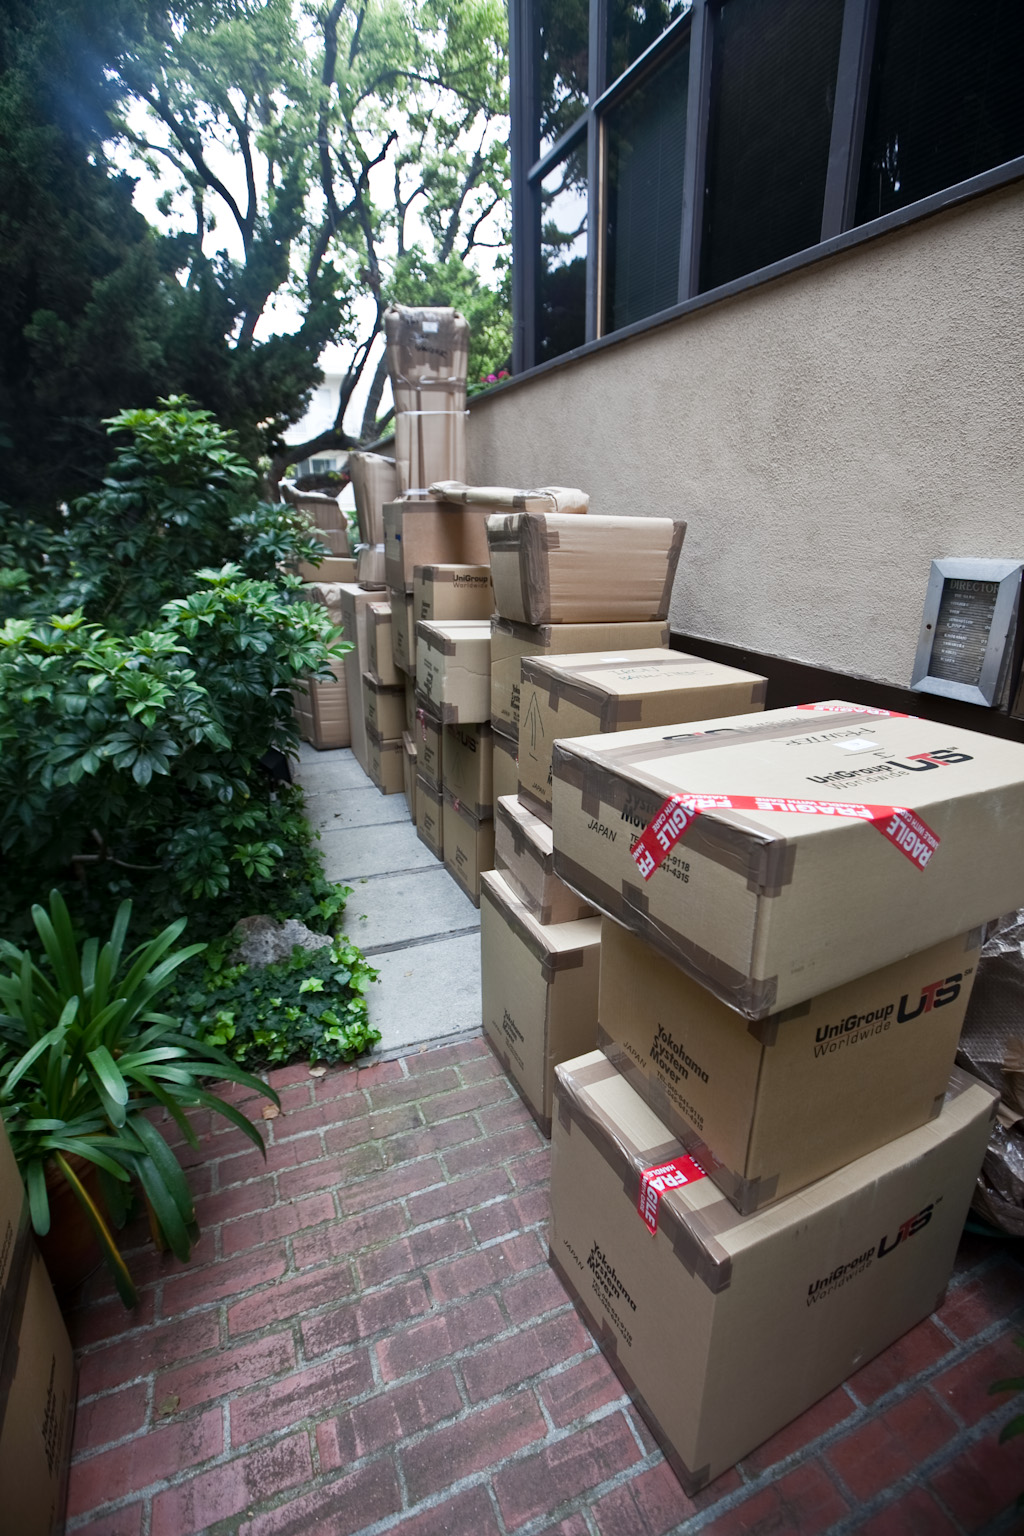 Los Angeles: moving day